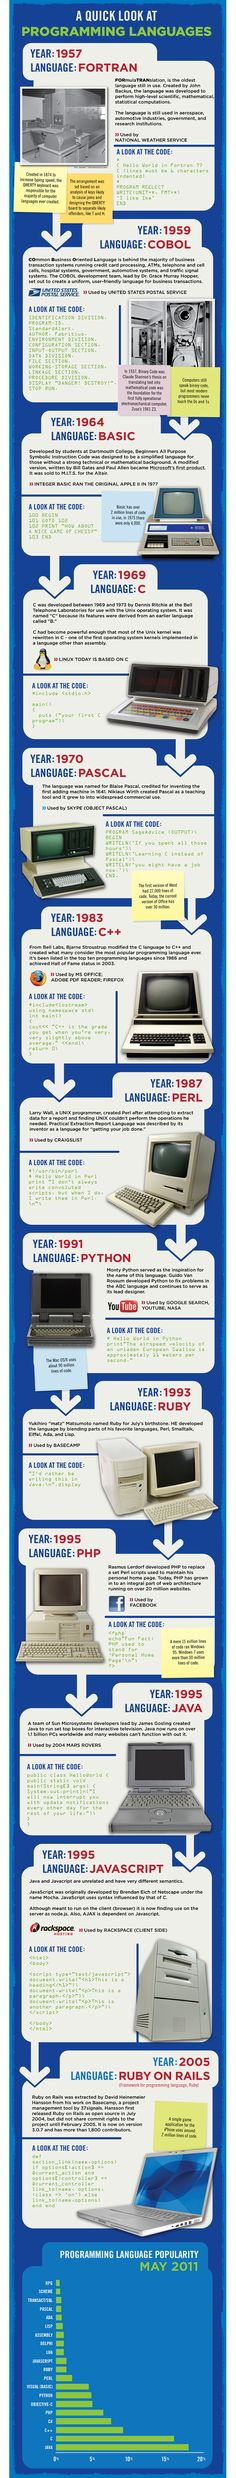 The History of Programming Languages [Infographic] – ReadWrite